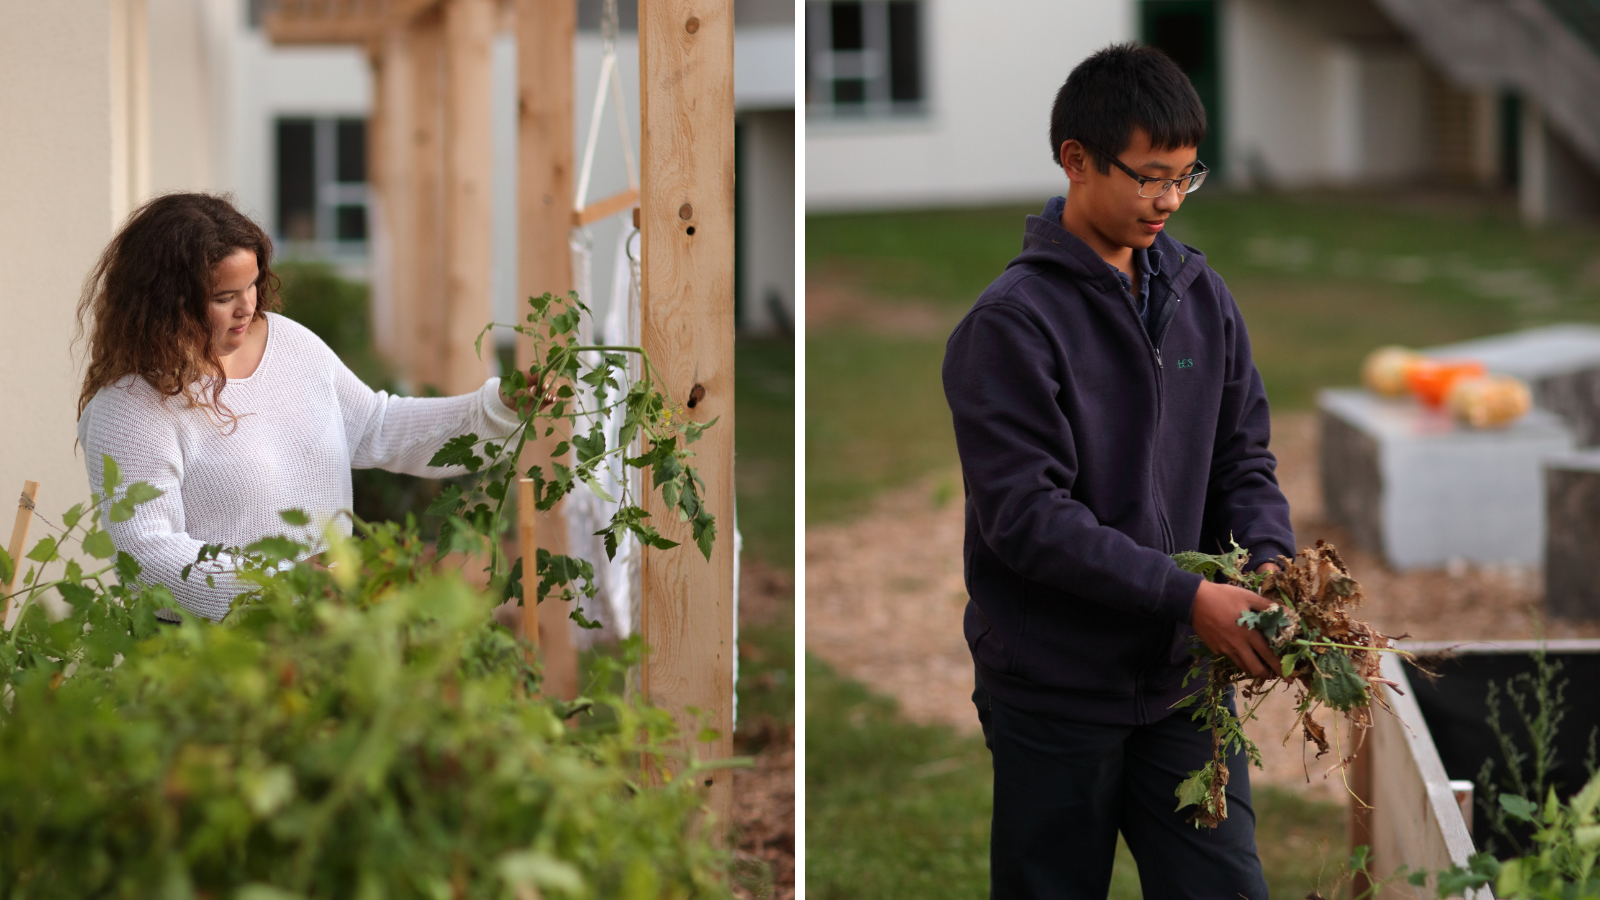 A female student assesses a vine and a male student holds weeds he just pulled from the garden